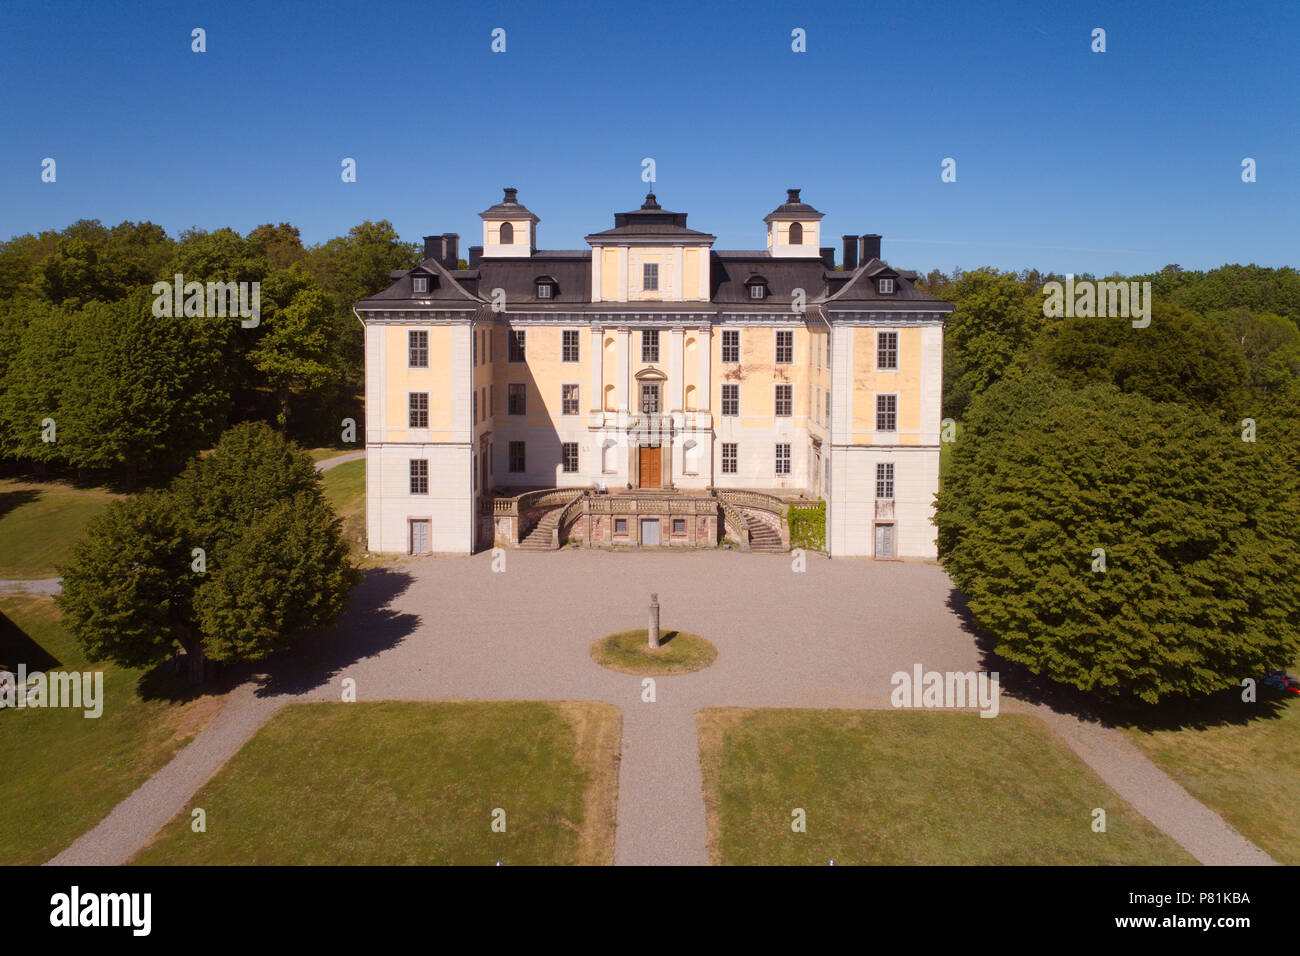 Malsaker, Sweden - May 27, 2018: A high angel view of the Malsaker manor used for training of Norwegian soldiers during WW II. - Stock Image